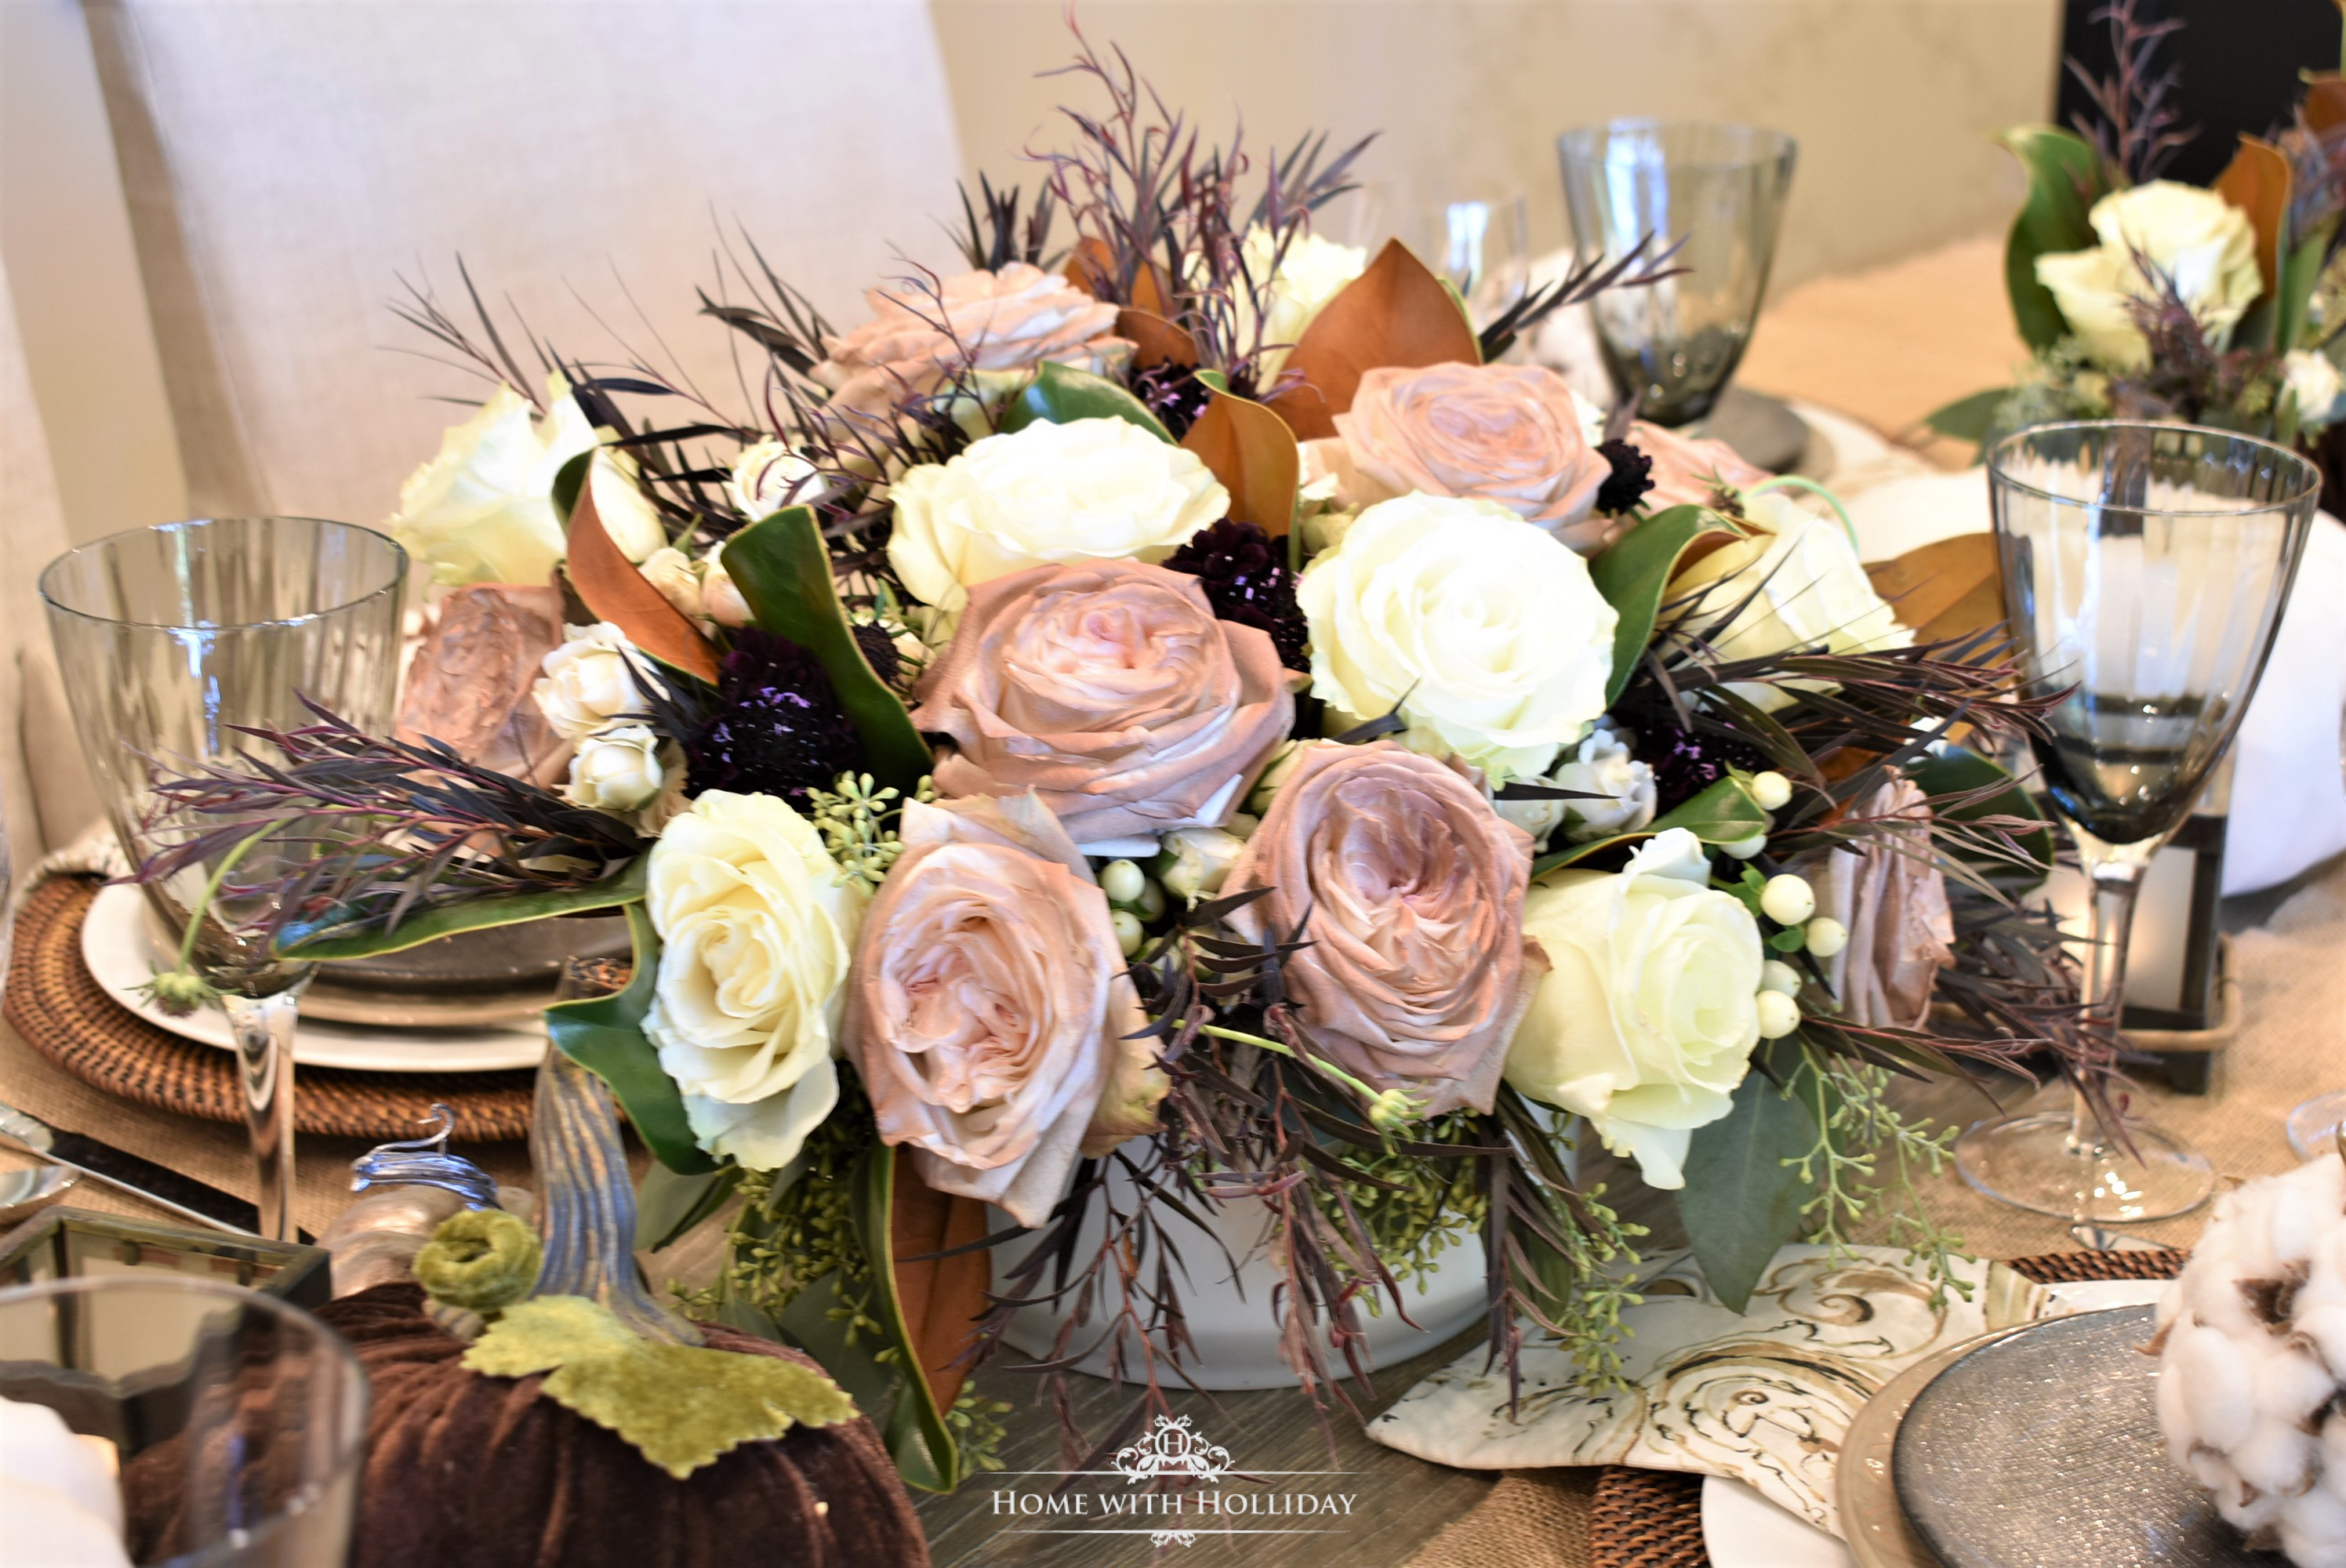 Fall Table Setting with White and Brown Pumkpins - Floral Details